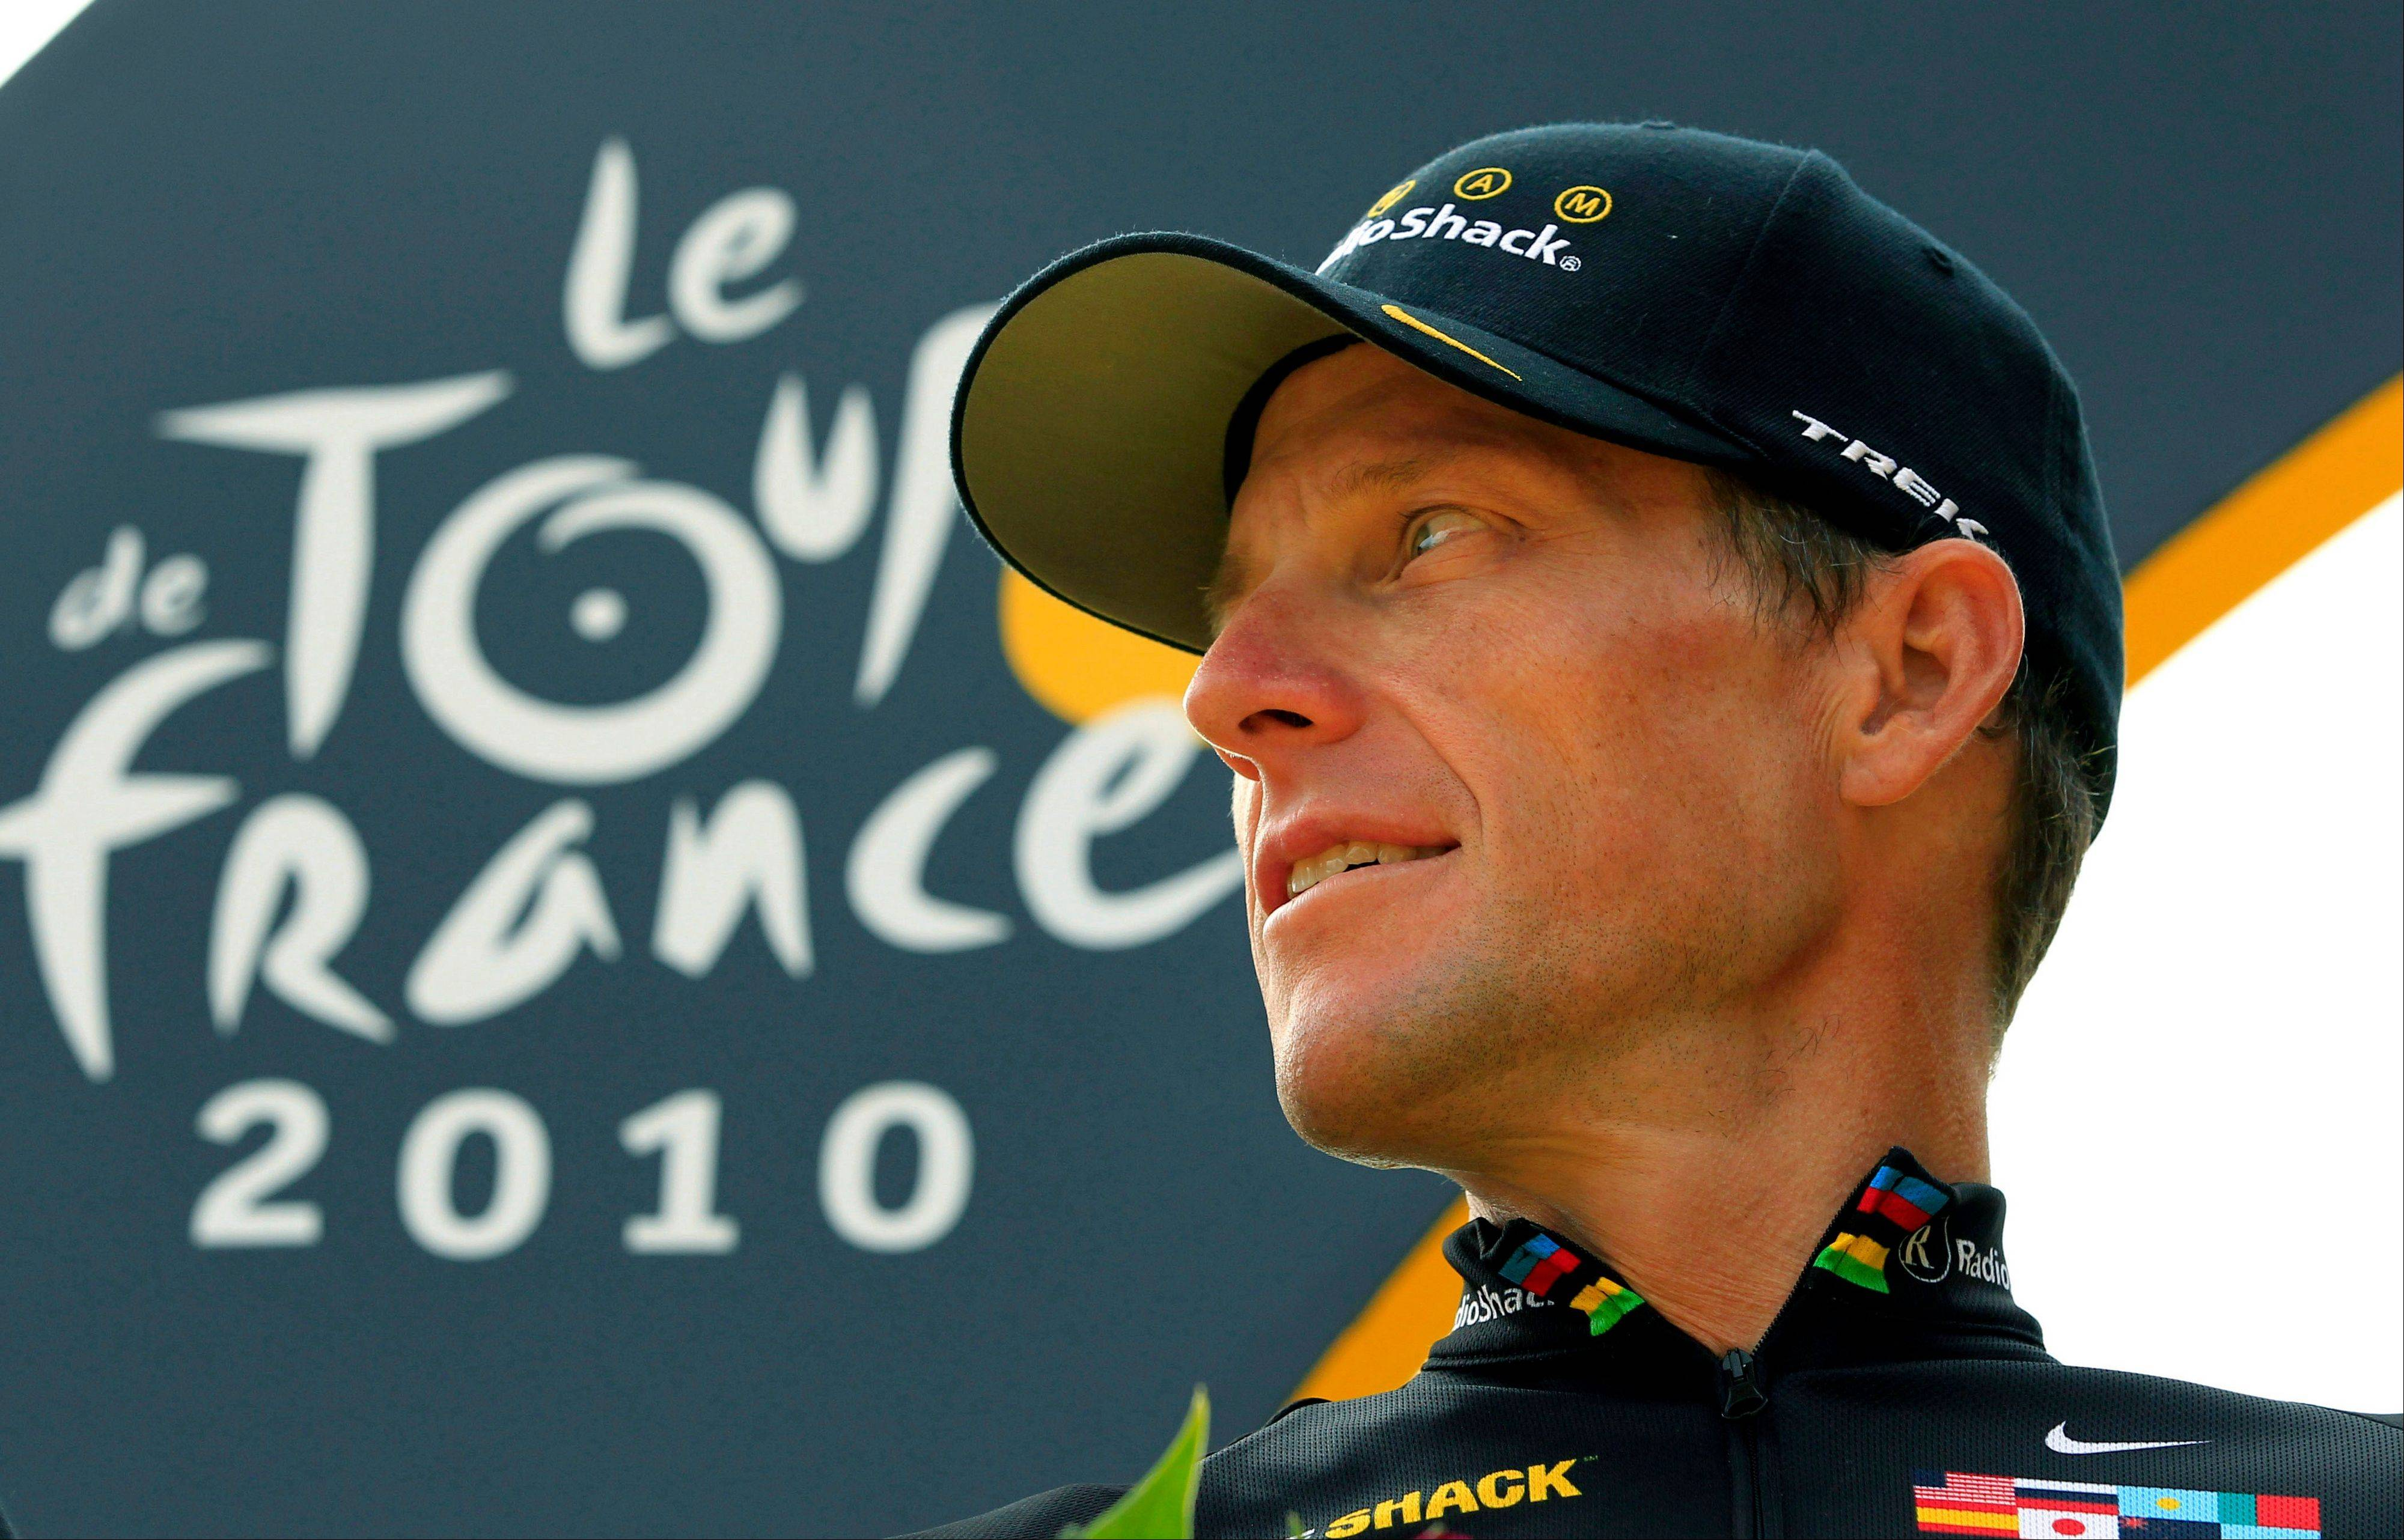 Anti-doping agency files formal charges against Armstrong